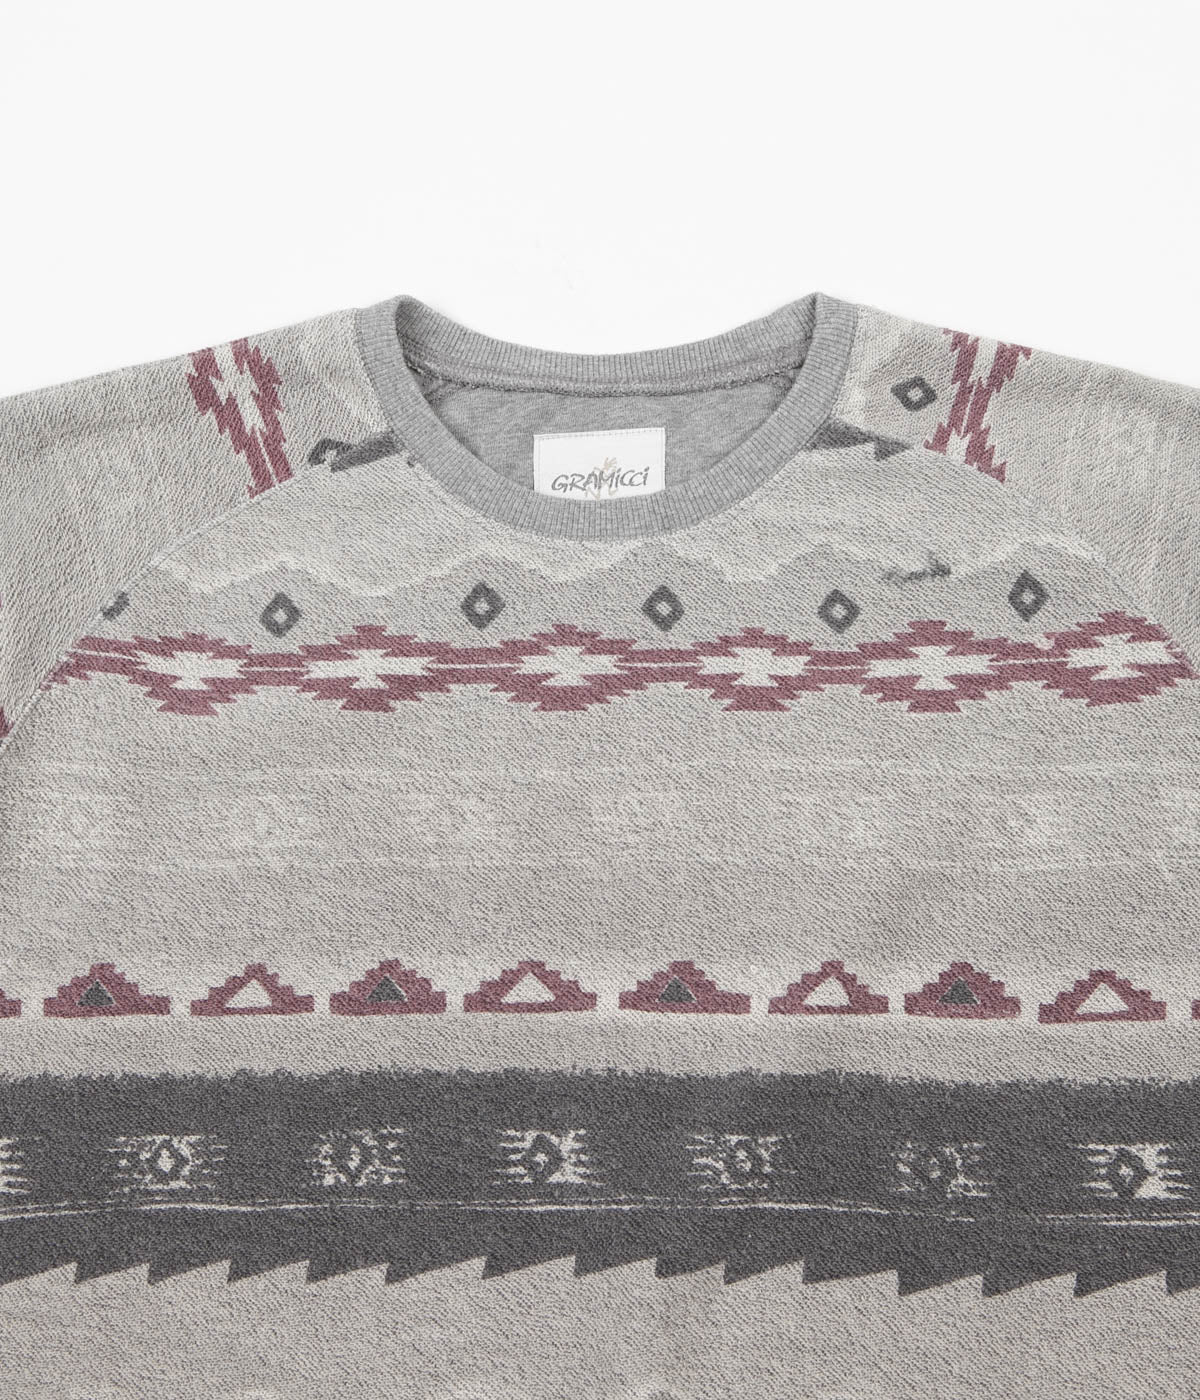 Gramicci Japan Talecut Sweatshirt - Native